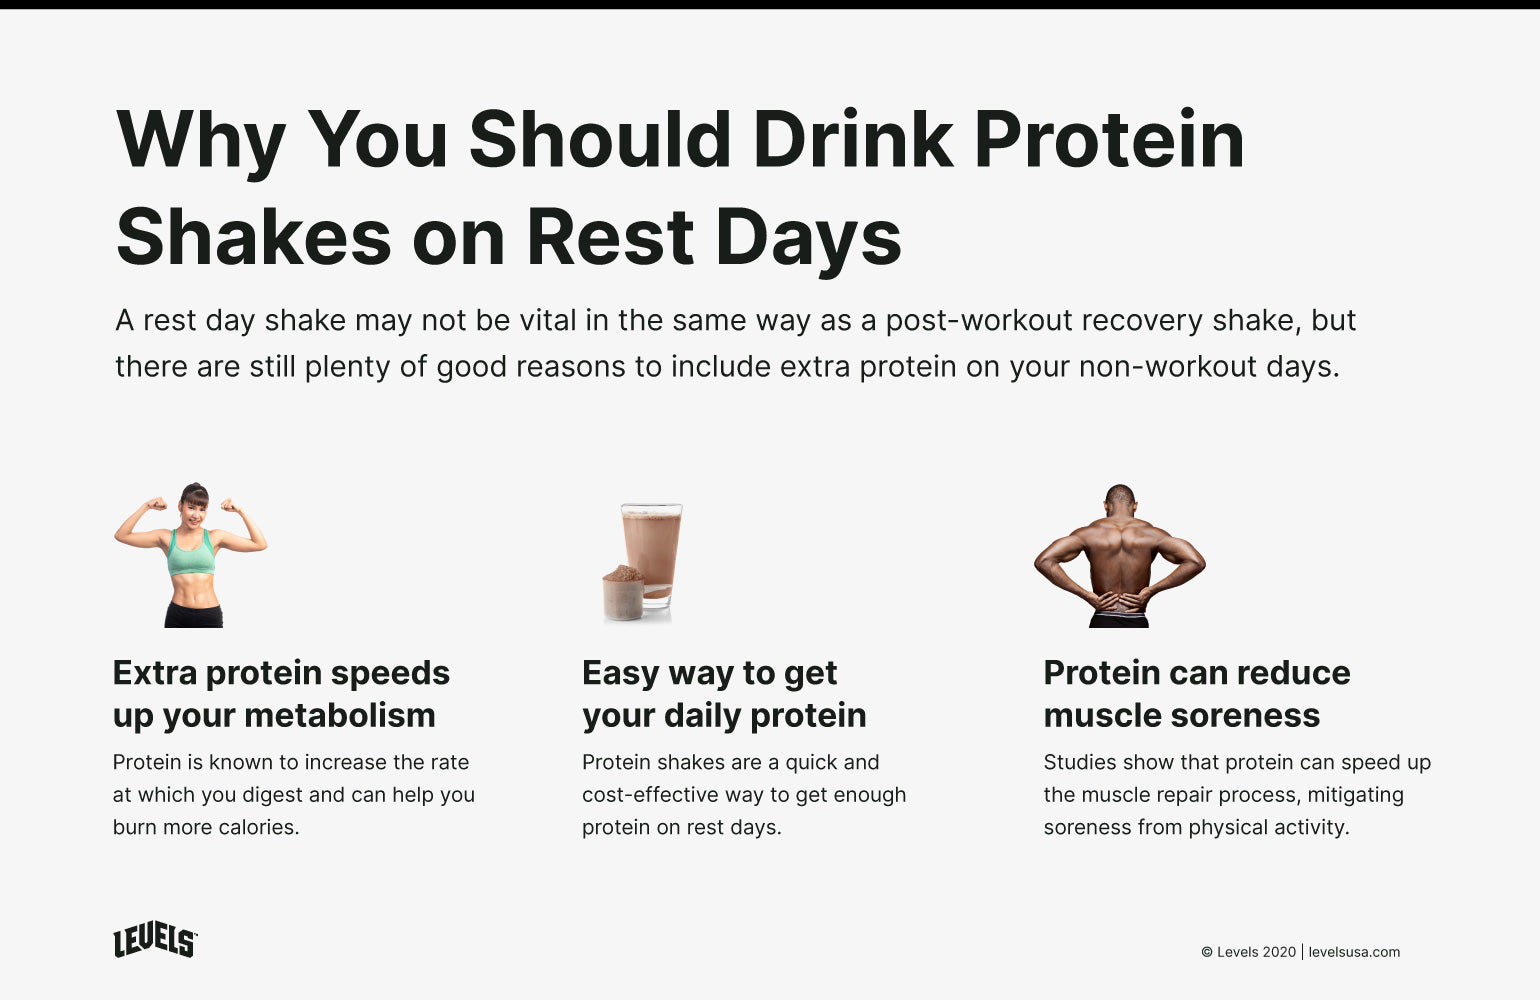 Protein Shake On Rest Days - Infographic